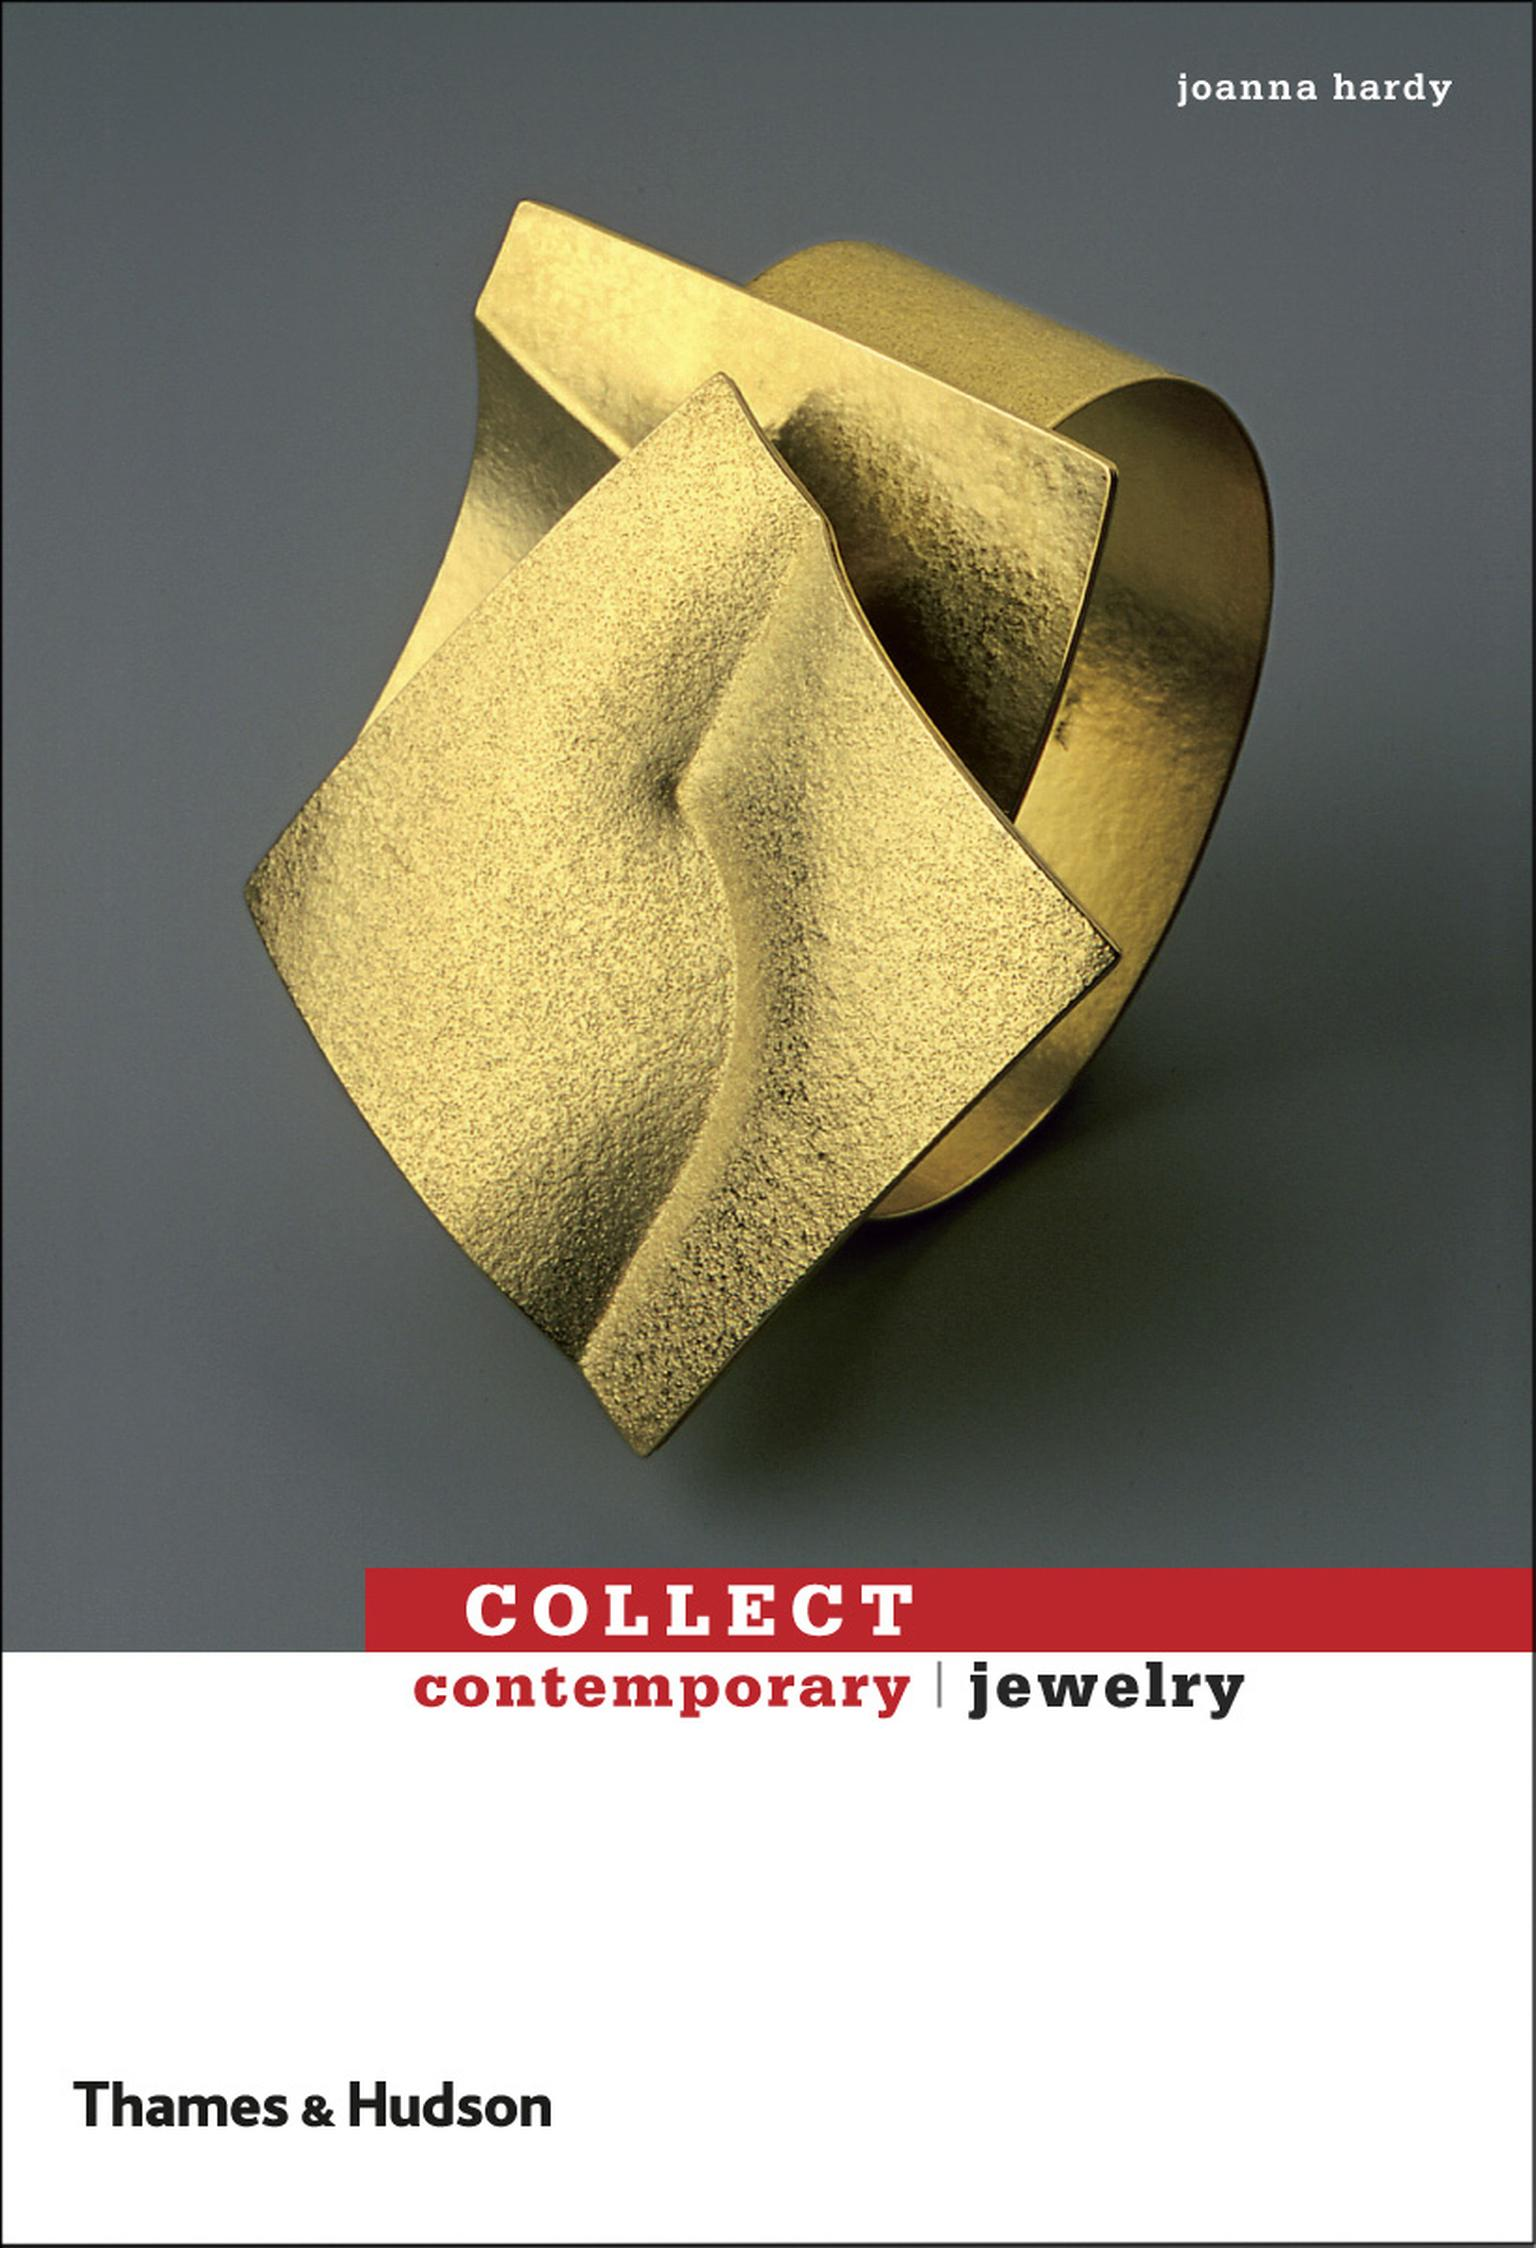 Collecting Contemporary Jewellery by Joanna Hardy